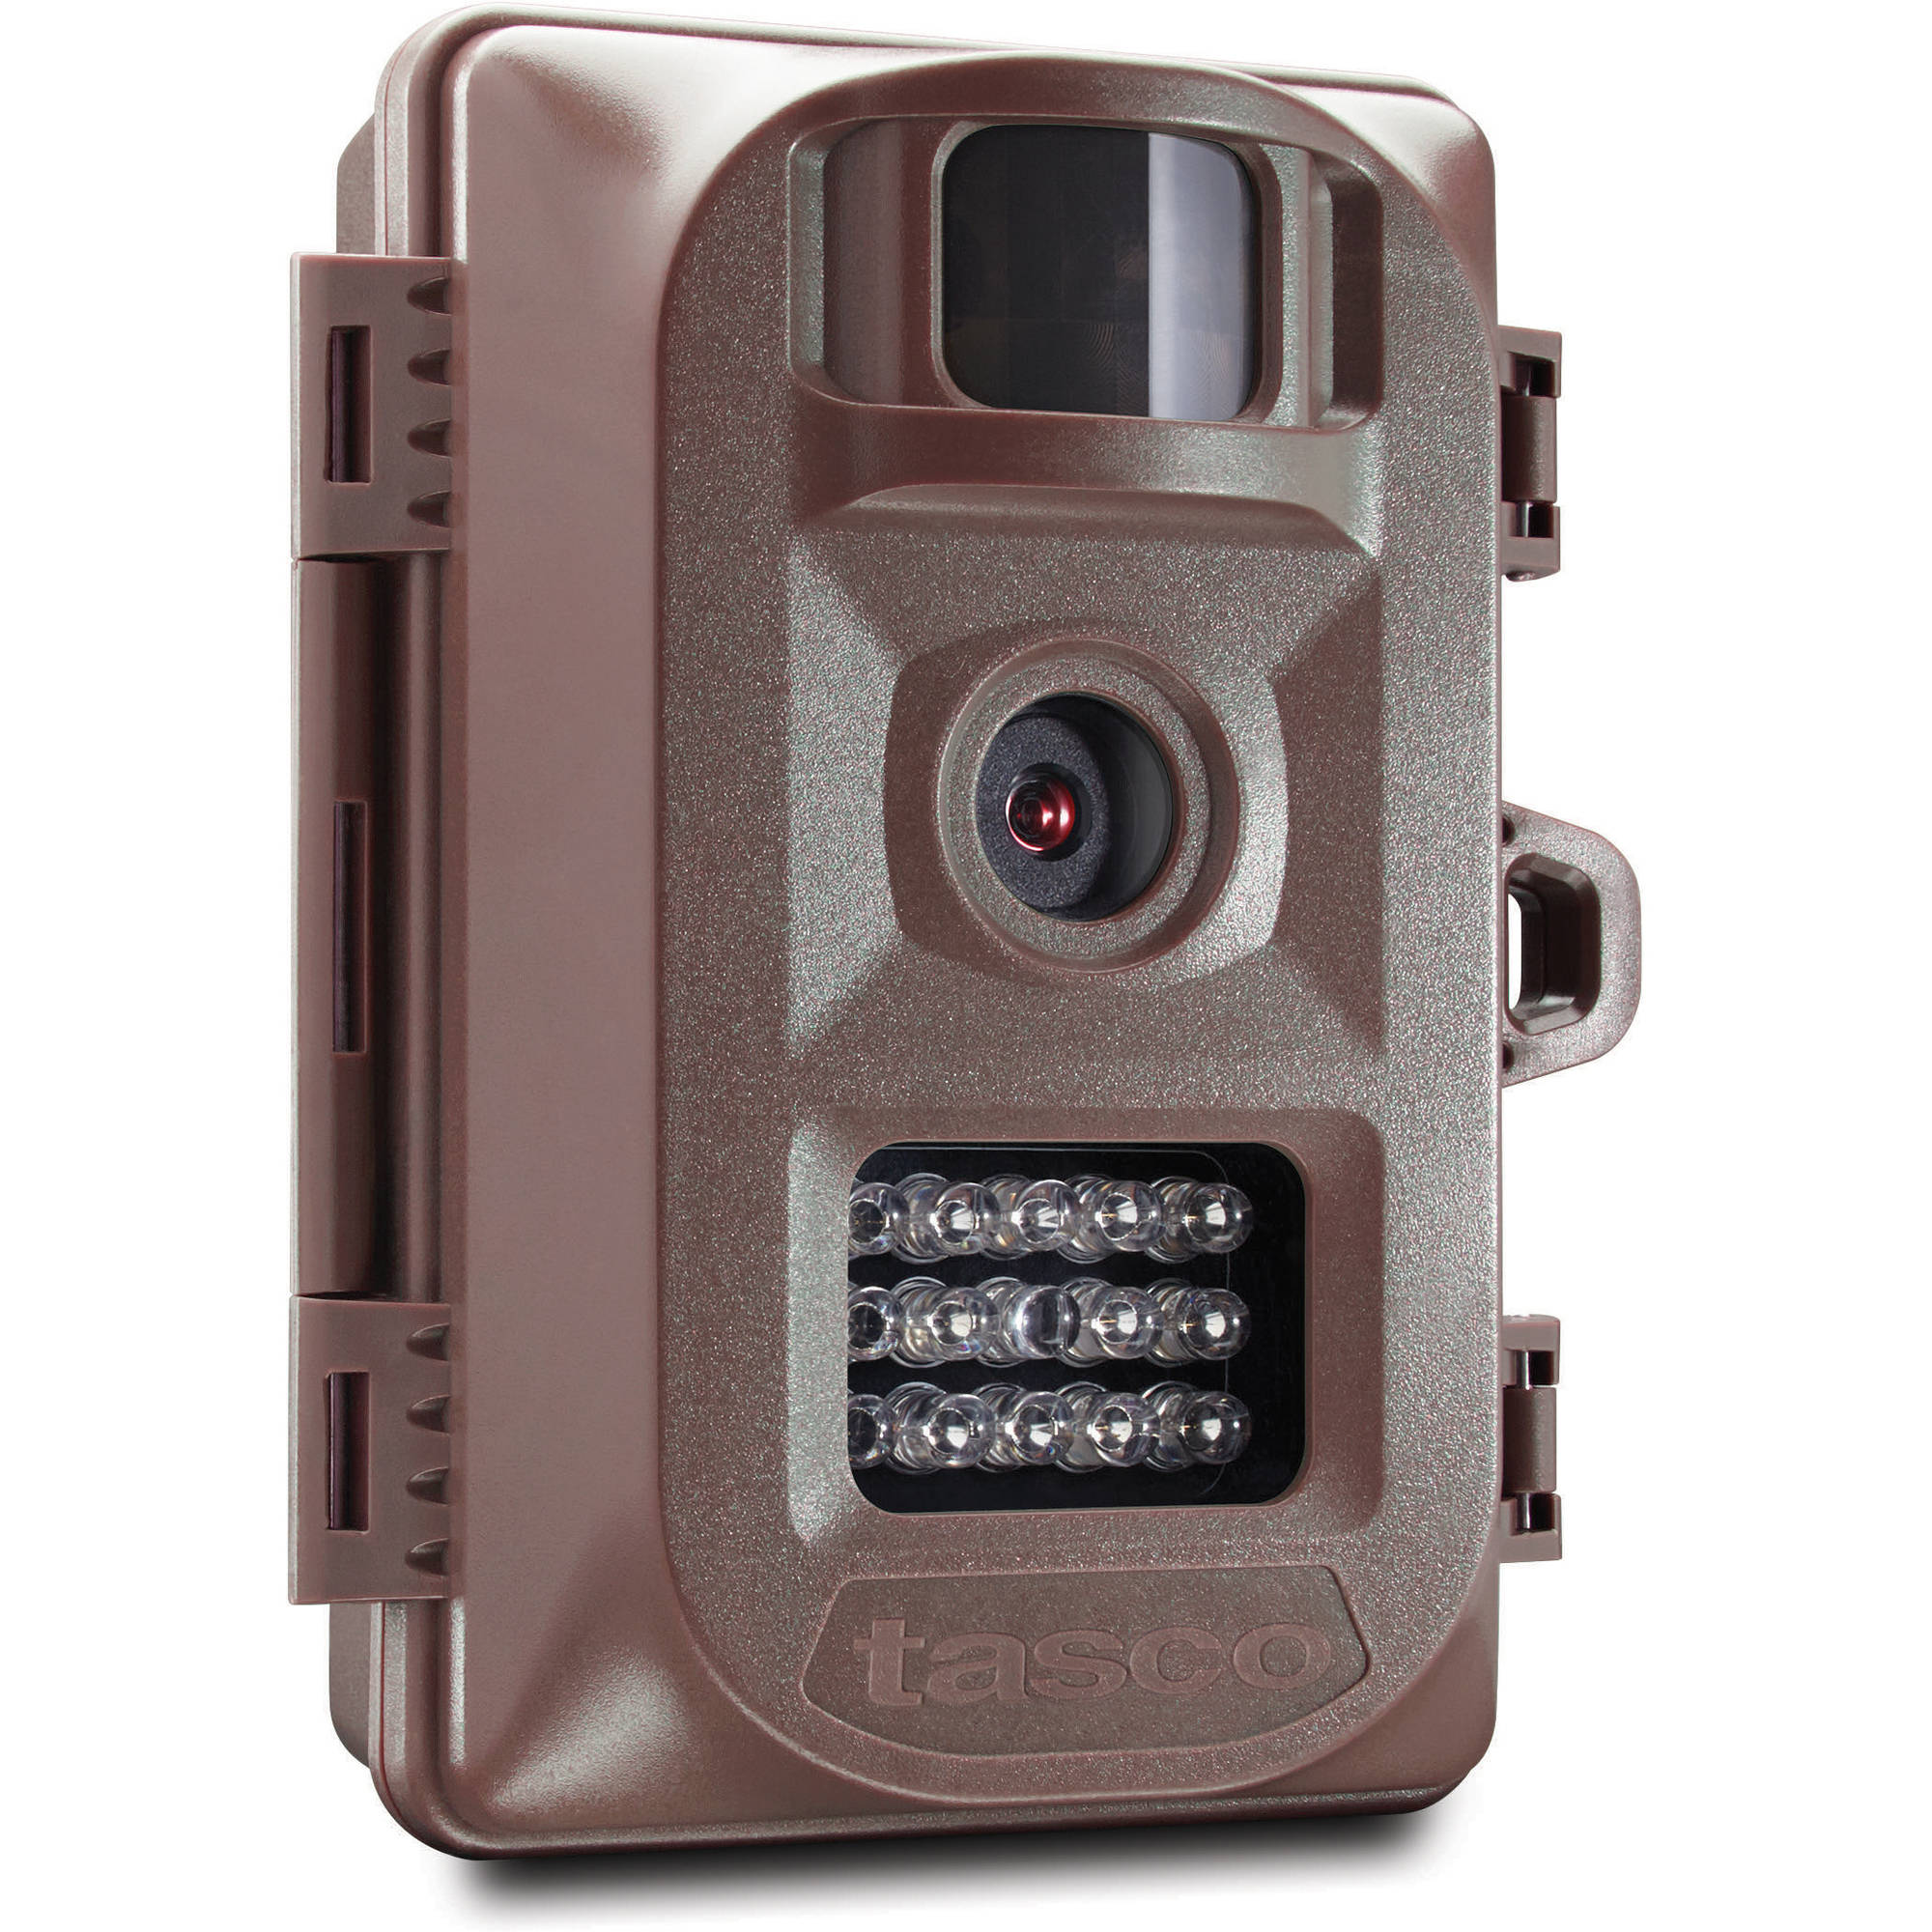 Tasco Game Cameras and Accessories - Walmart.com